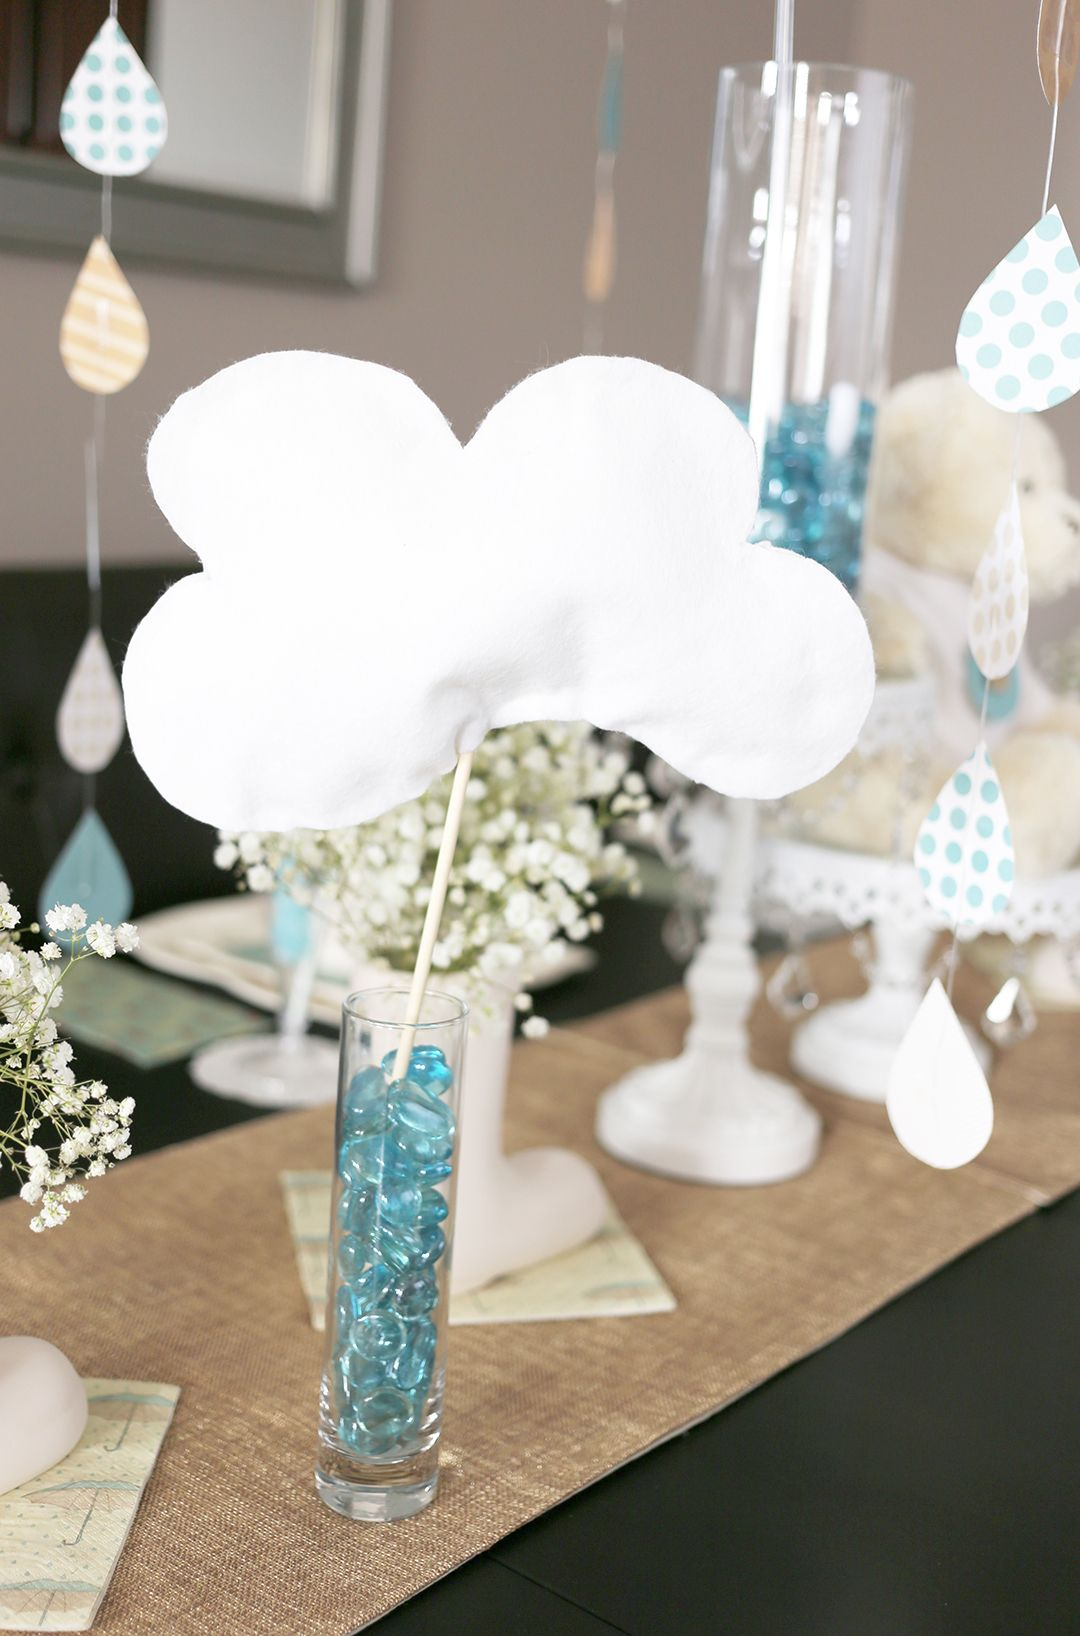 Light blue wedding decoration ideas  White Felt Clouds party decorations   Party Themes  Baby Showers